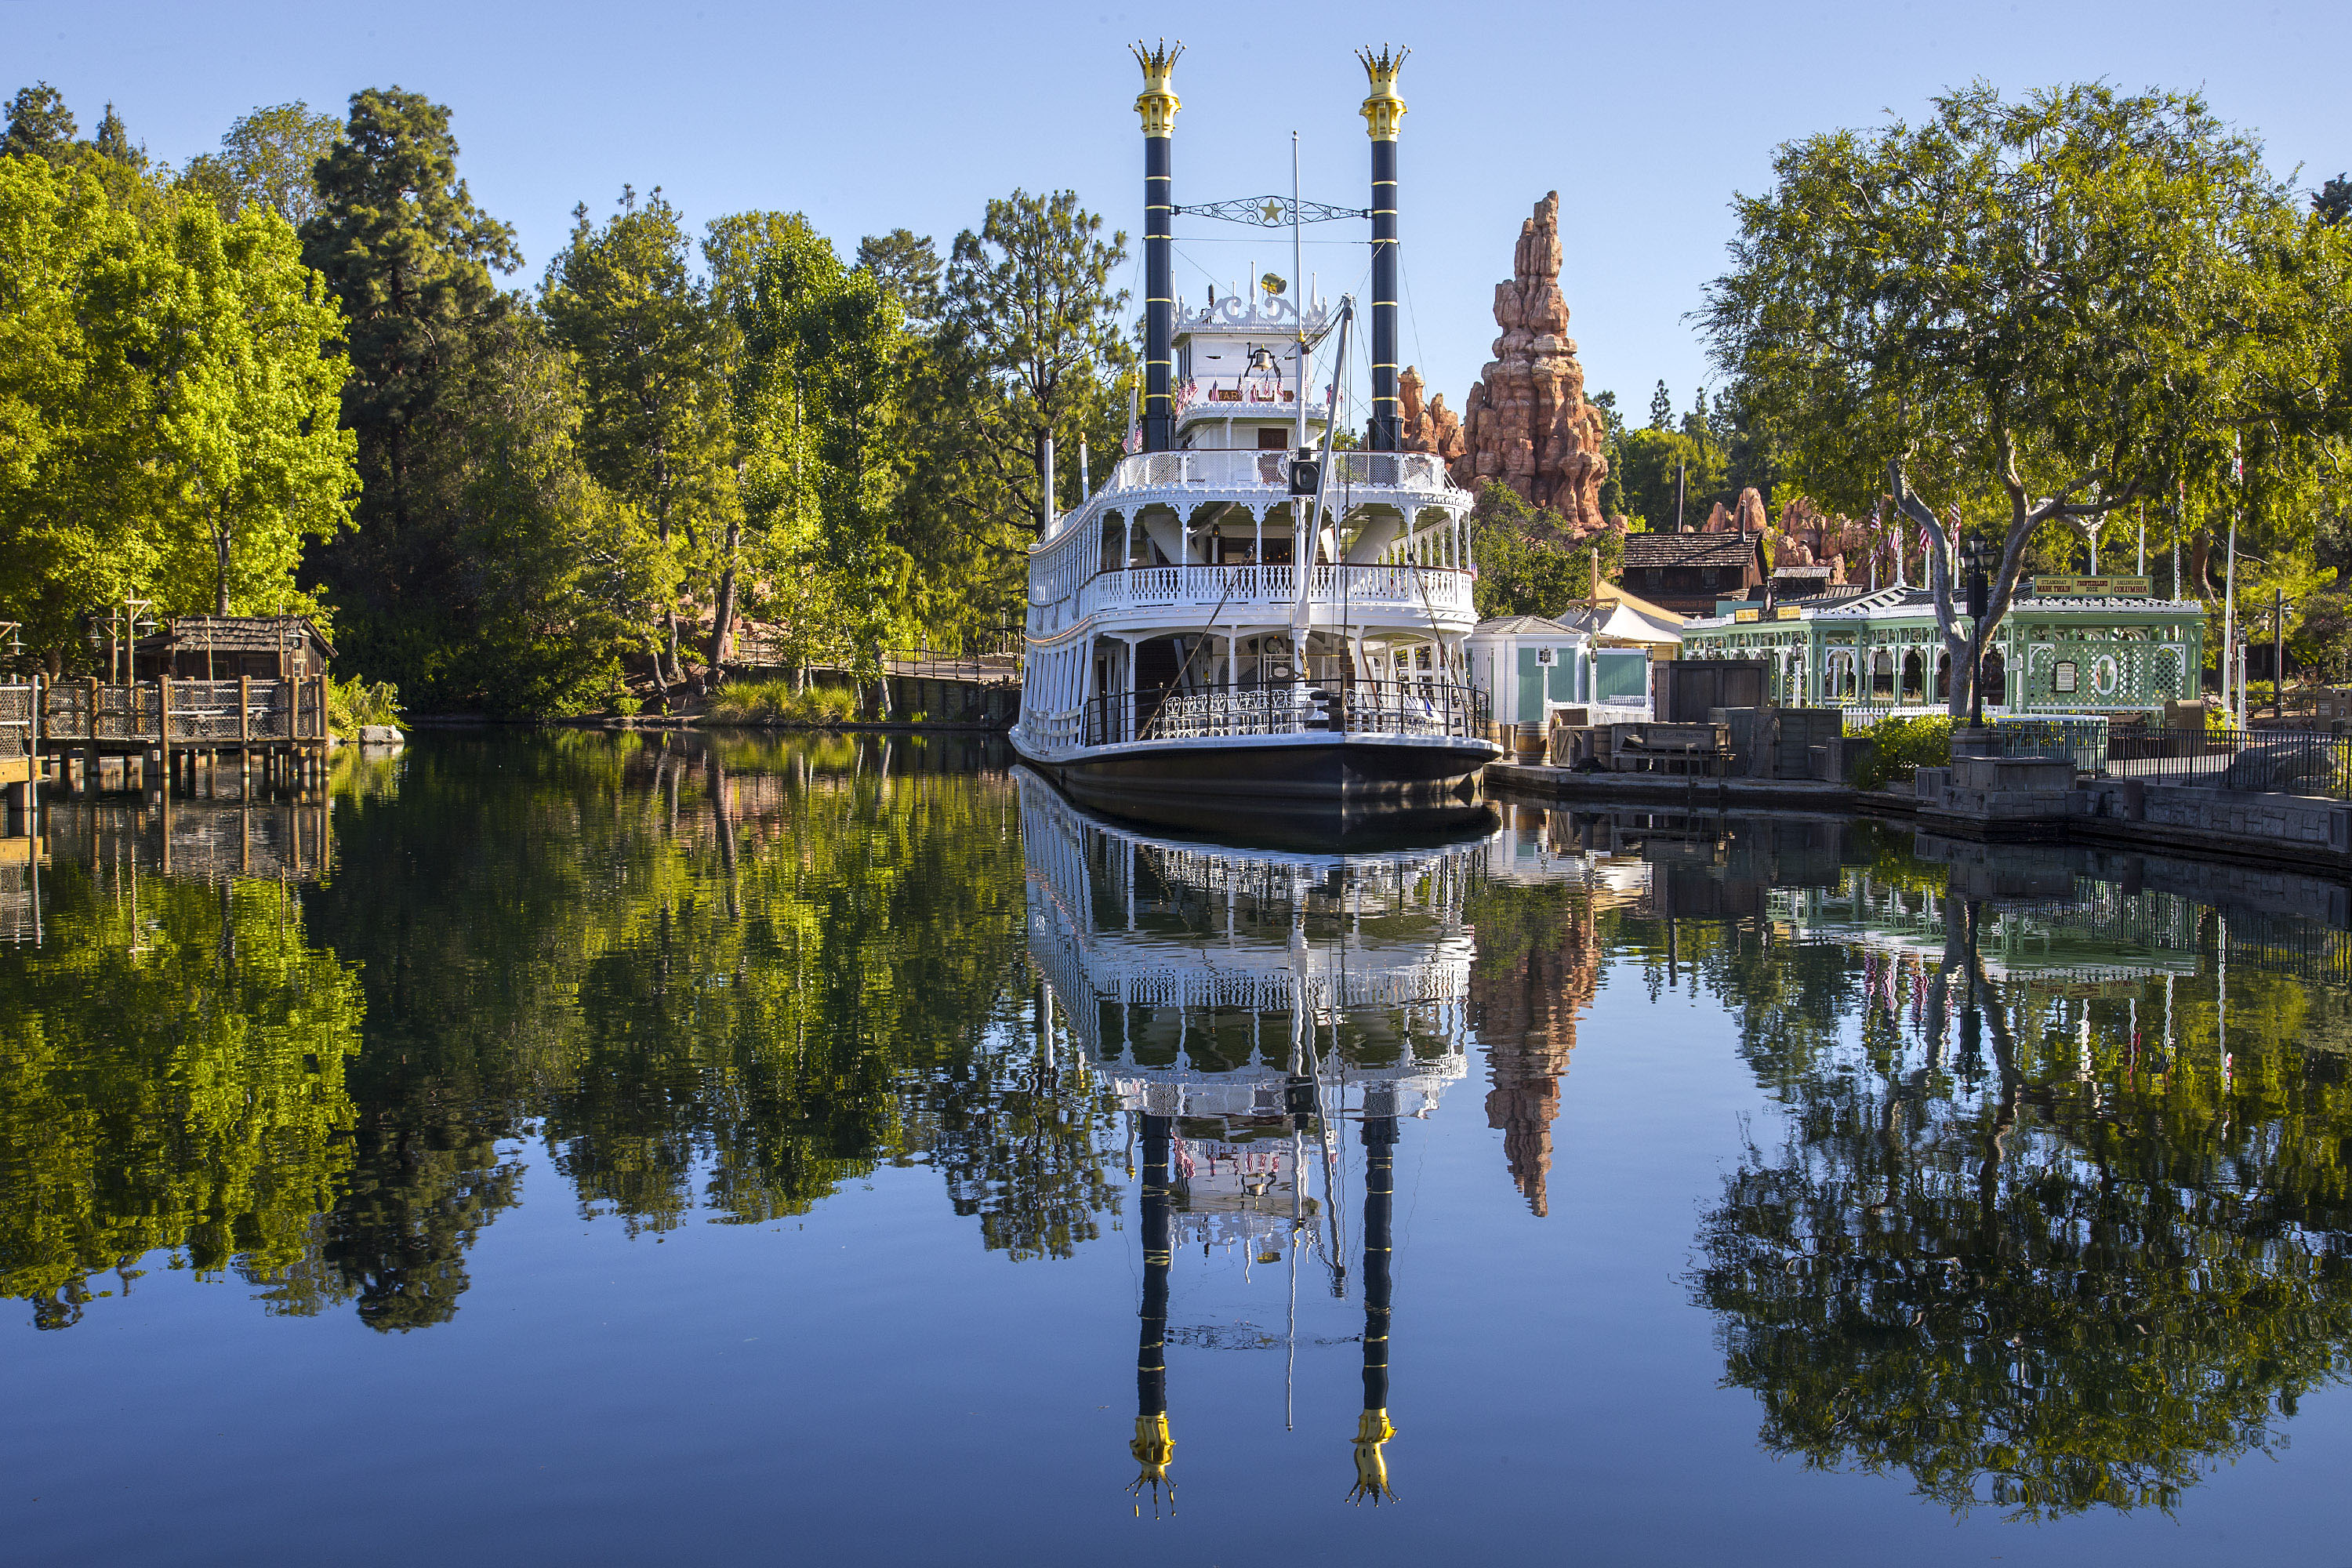 The Mark Twain Riverboat and Big Thunder Mountain are reflected in the Rivers of America in Frontierland at Disneyland Park in Anaheim, Calif. Frontierland brings to life the natural beauty, excitement and promise of the American West in the 1800s. For editorial news use only.